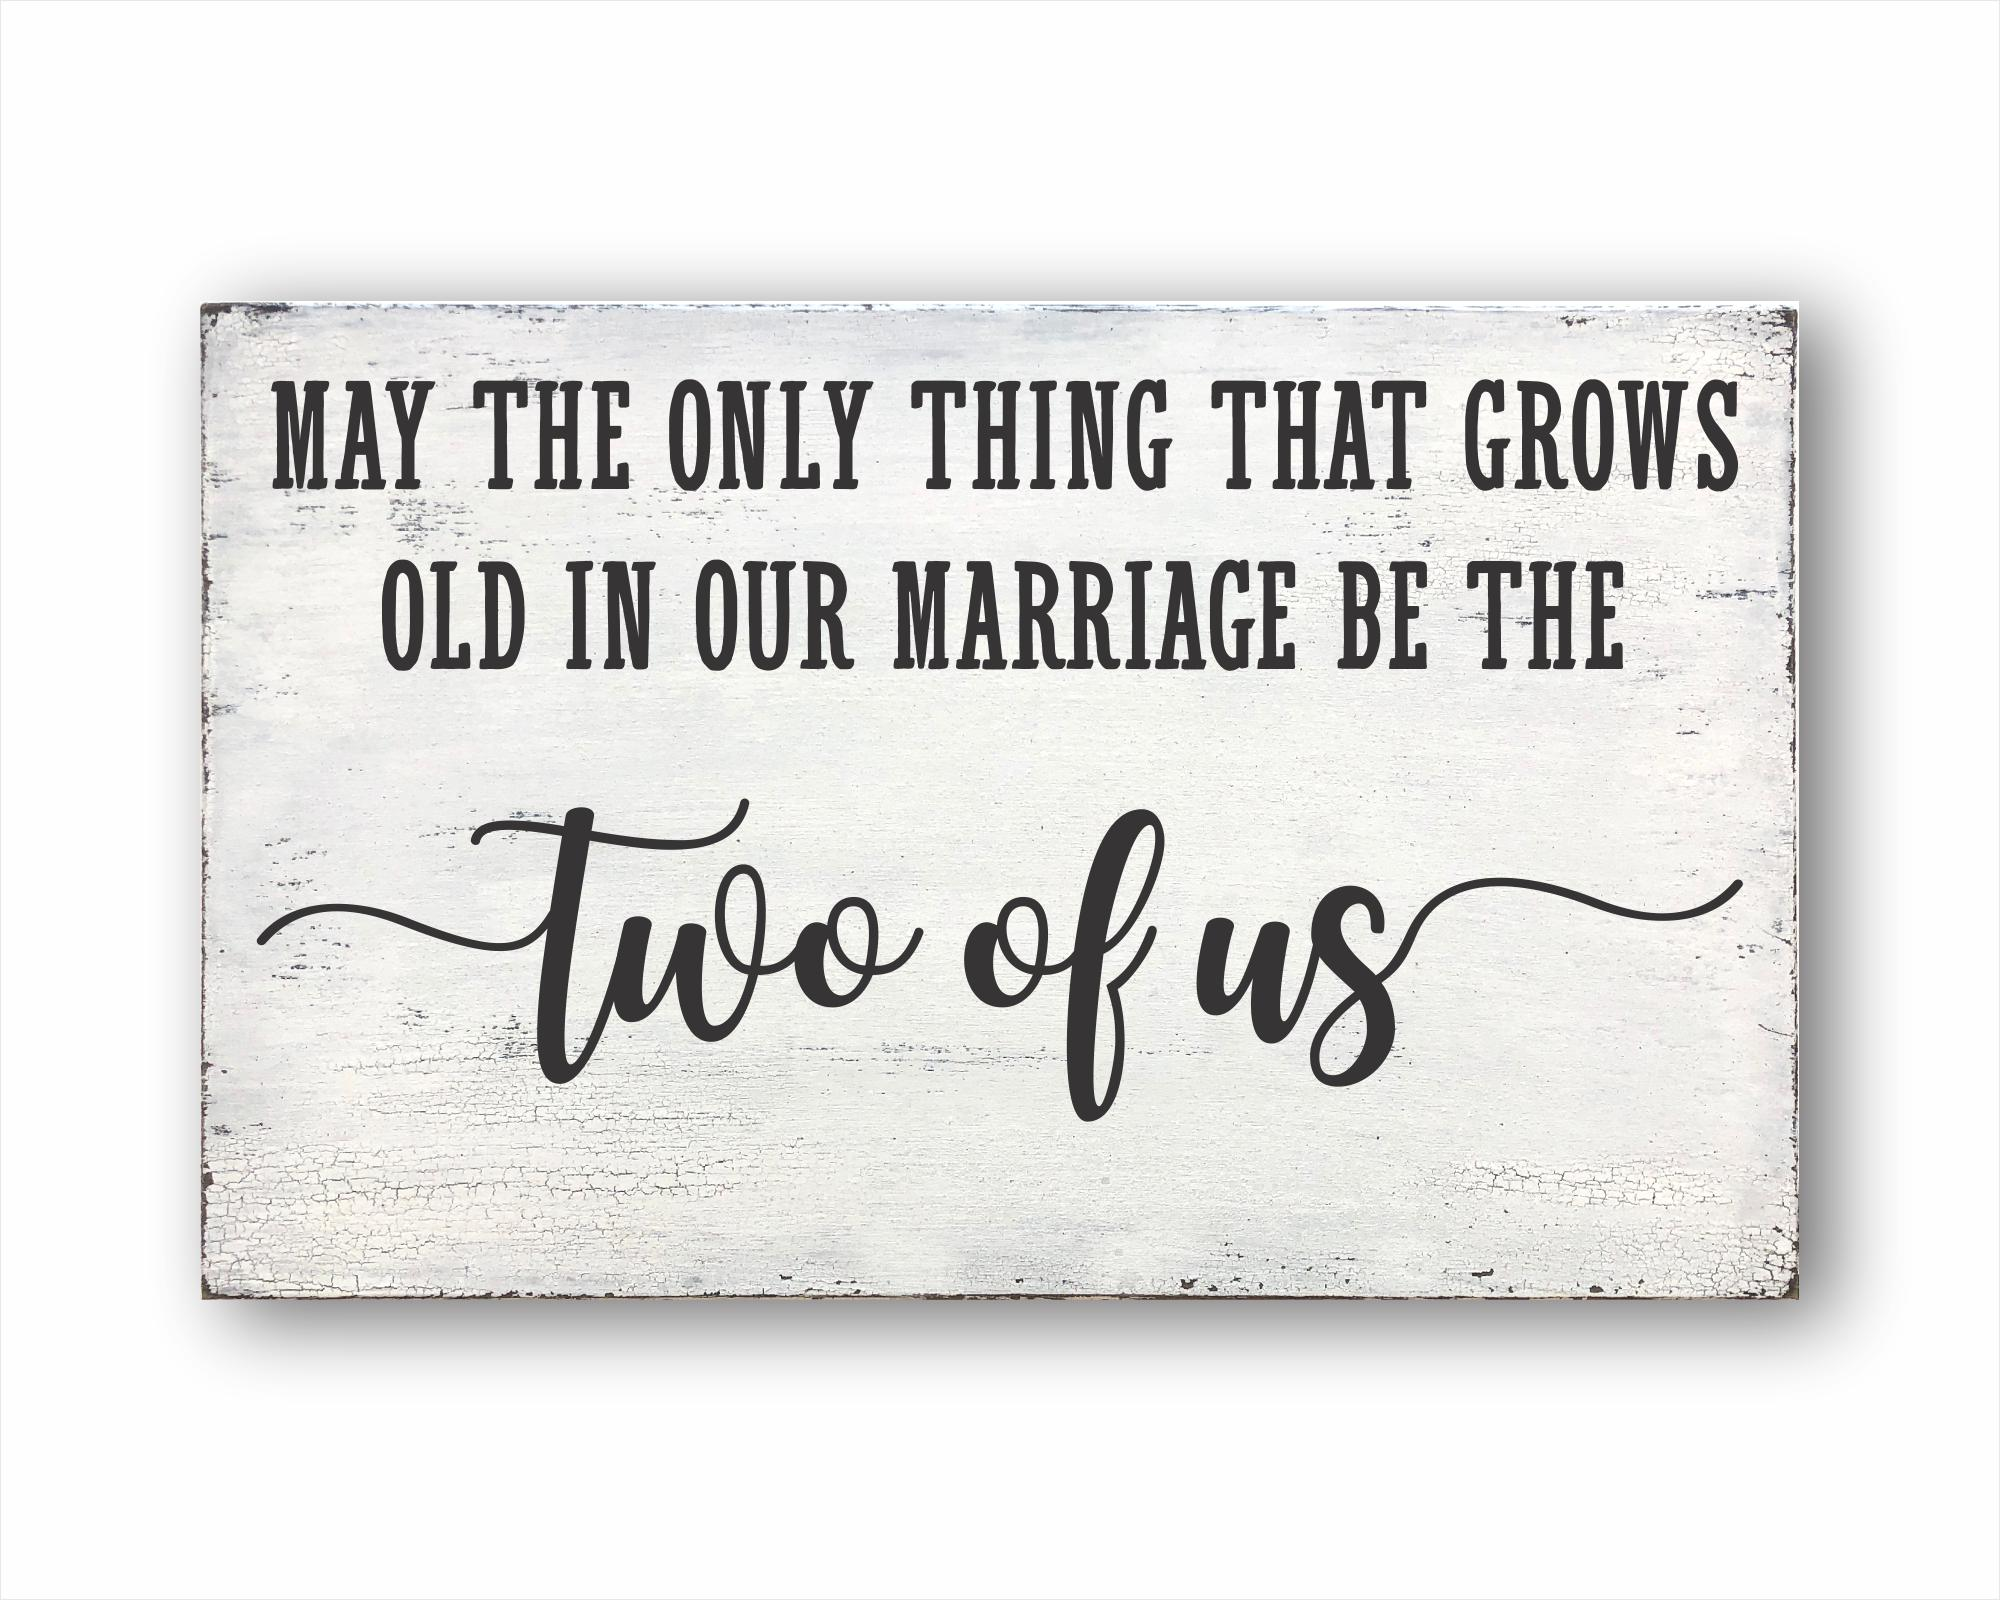 May The Only Thing That Grows Old In Our Marriage Be The Two Of Us Sign: Rustic Rectangular Wood Sign